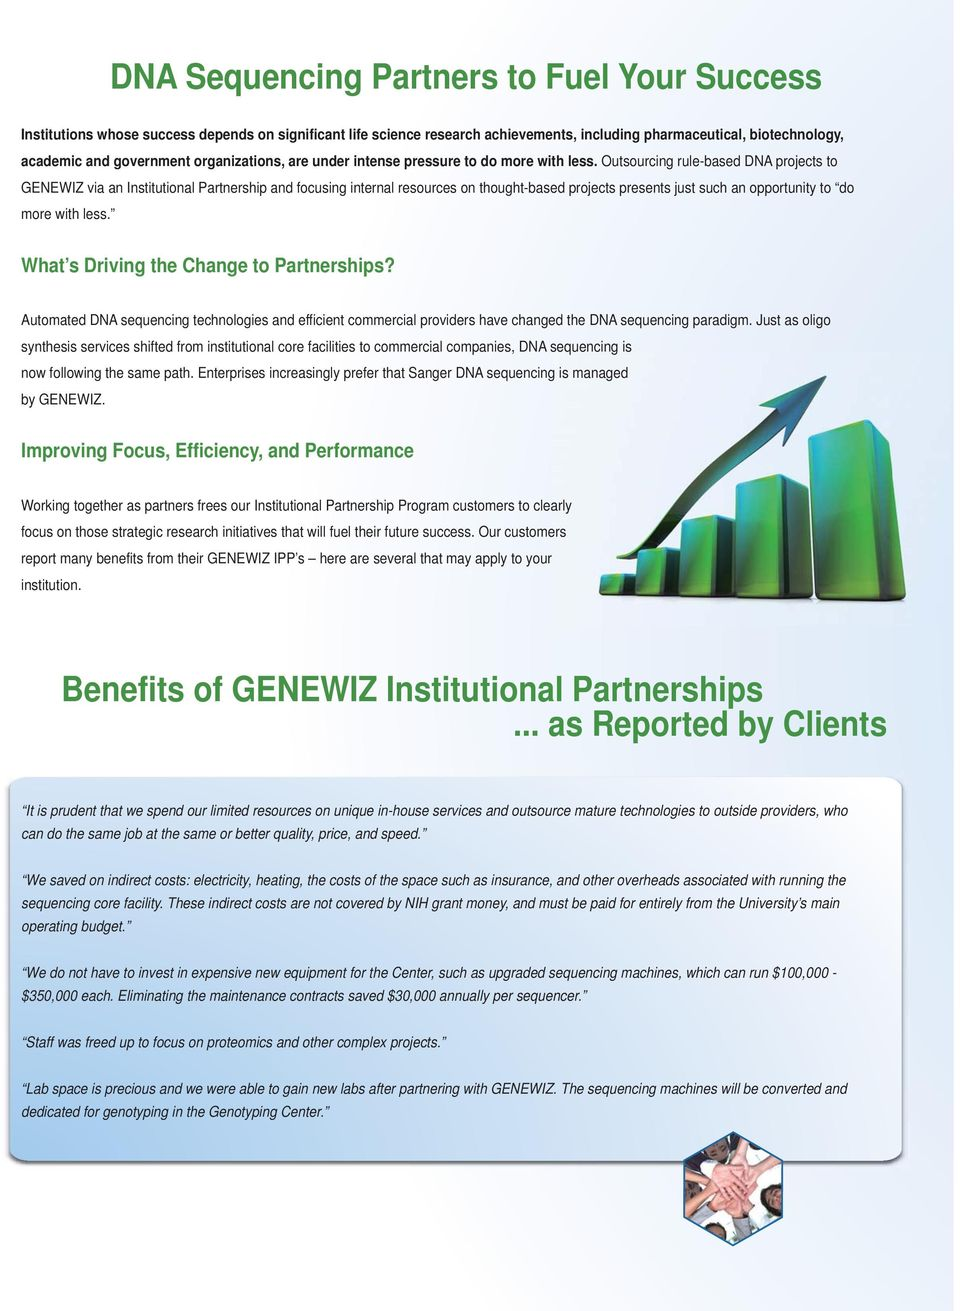 Outsourcing rule-based DNA projects to GENEWIZ via an Institutional Partnership and focusing internal resources on thought-based projects presents just such an opportunity to do more with less.